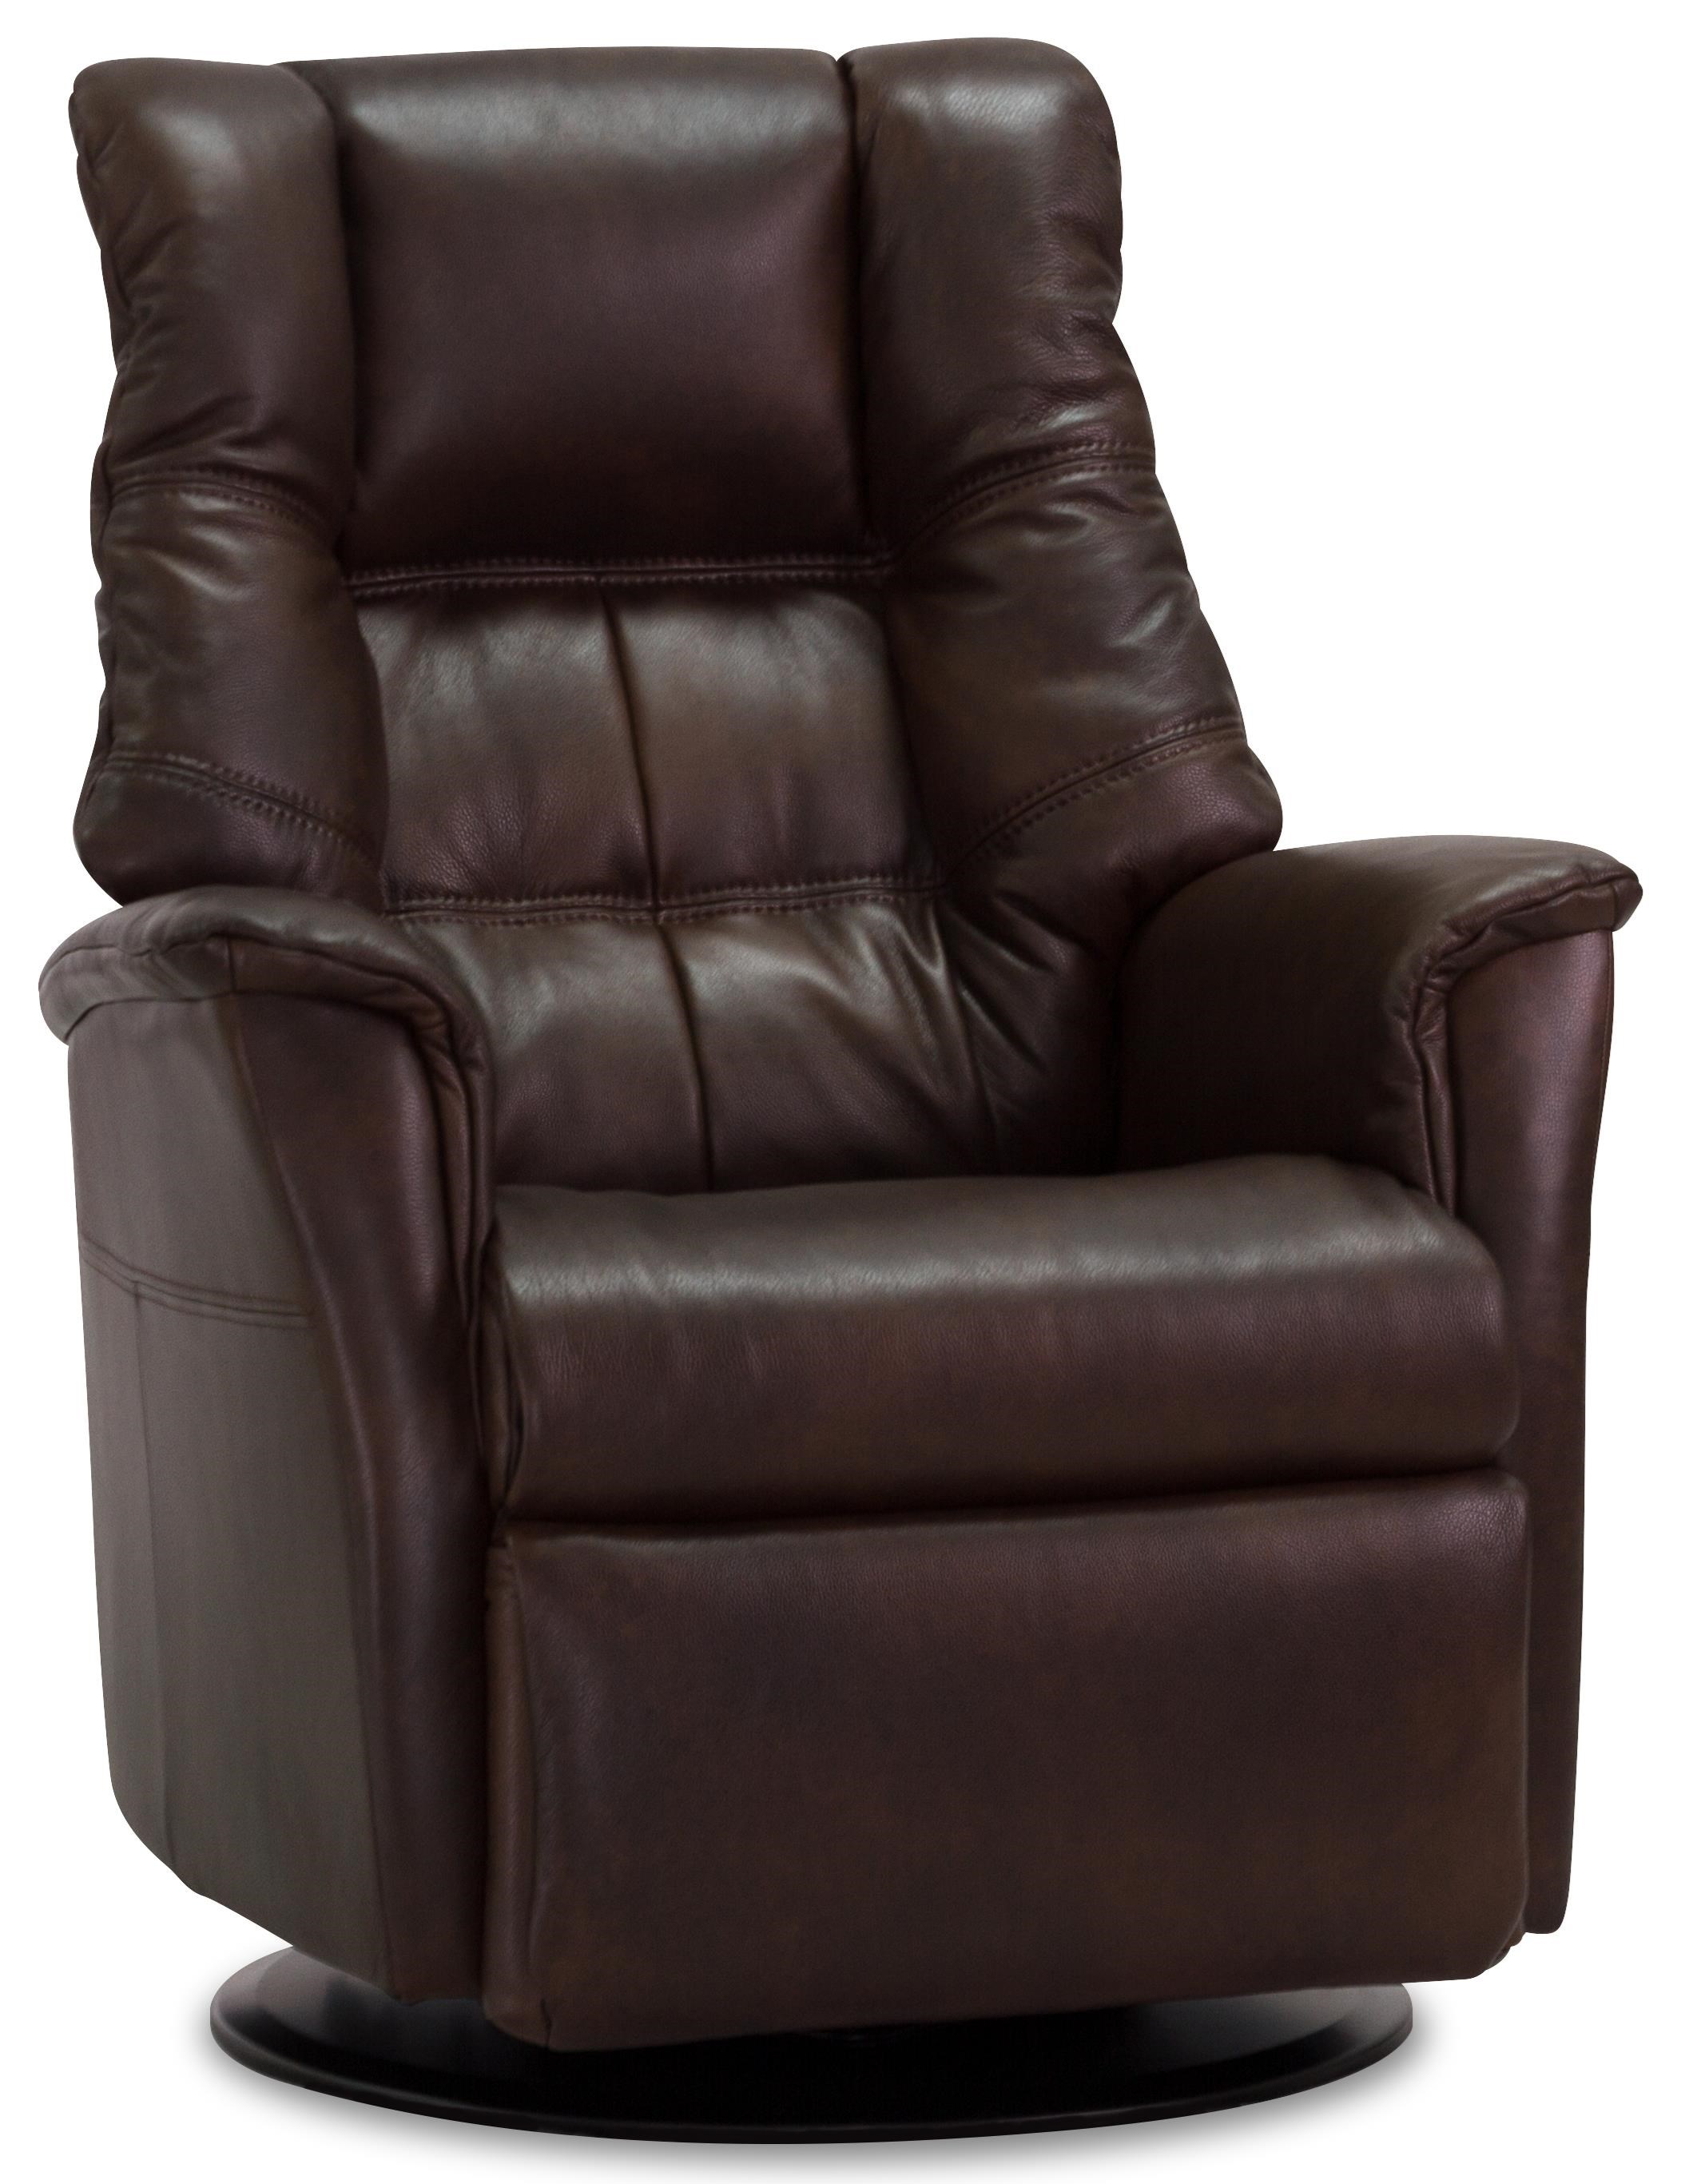 Boston Large Power Recliner with Chaise by IMG Norway at Baer's Furniture